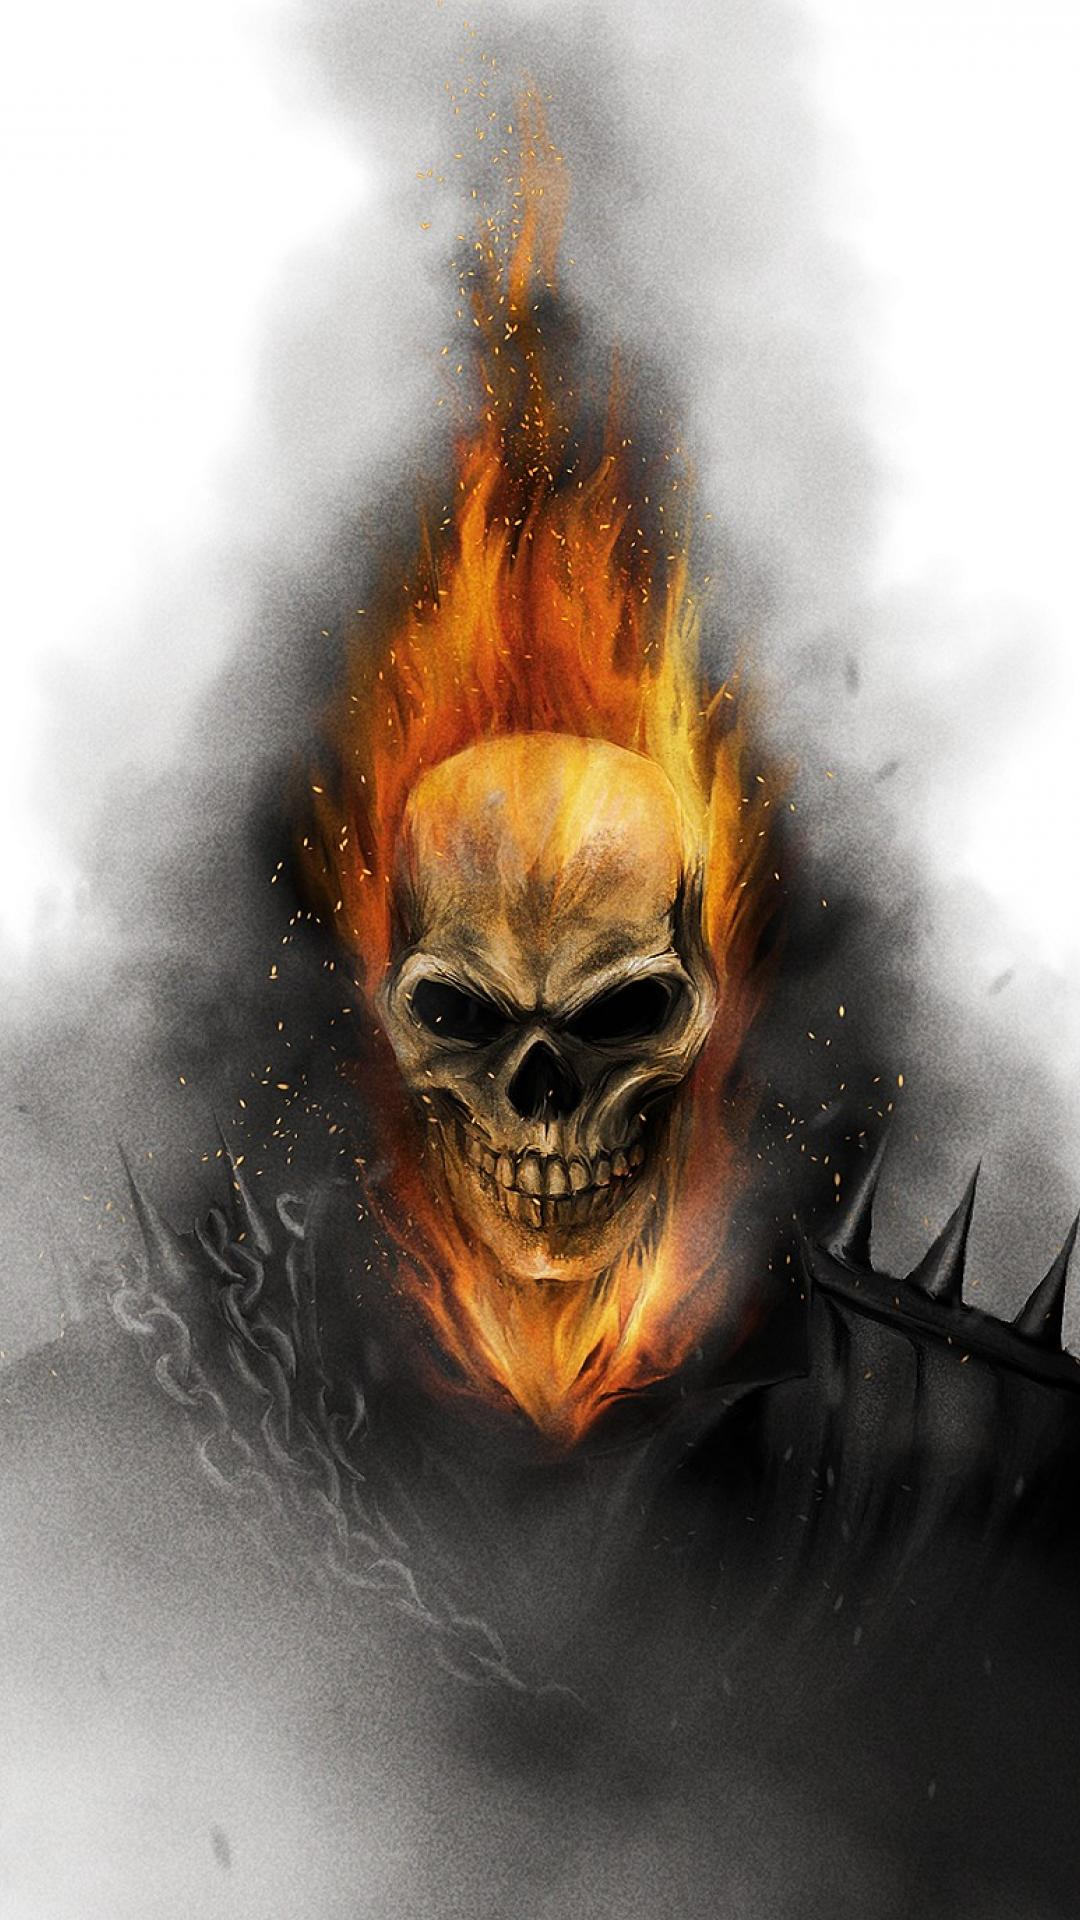 Ghost Rider Hd Wallpapers For Mobile